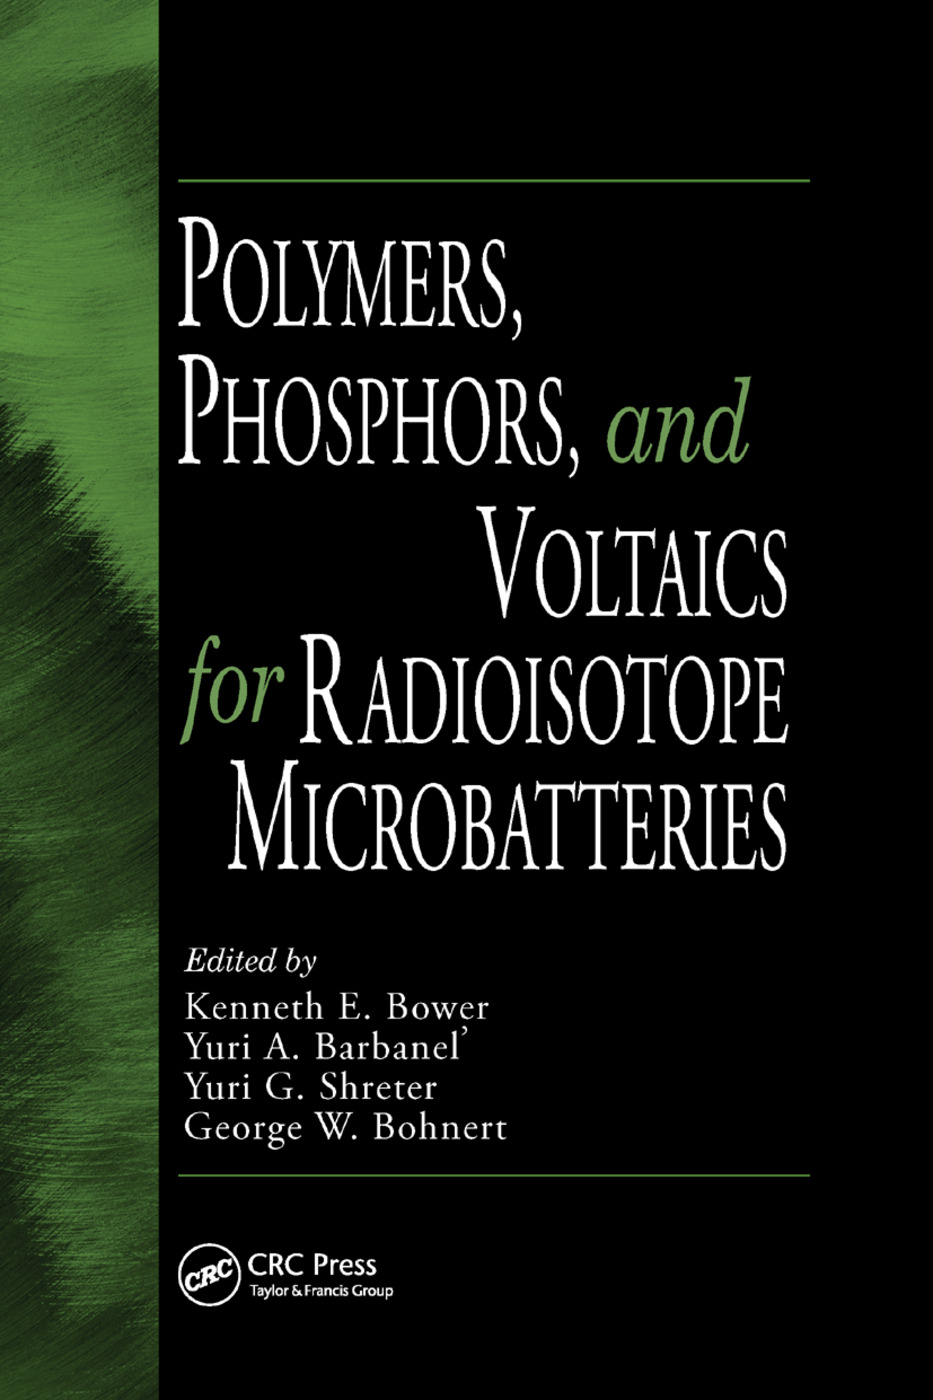 Polymers, Phosphors, and Voltaics for Radioisotope Microbatteries: 1st Edition (Paperback) book cover